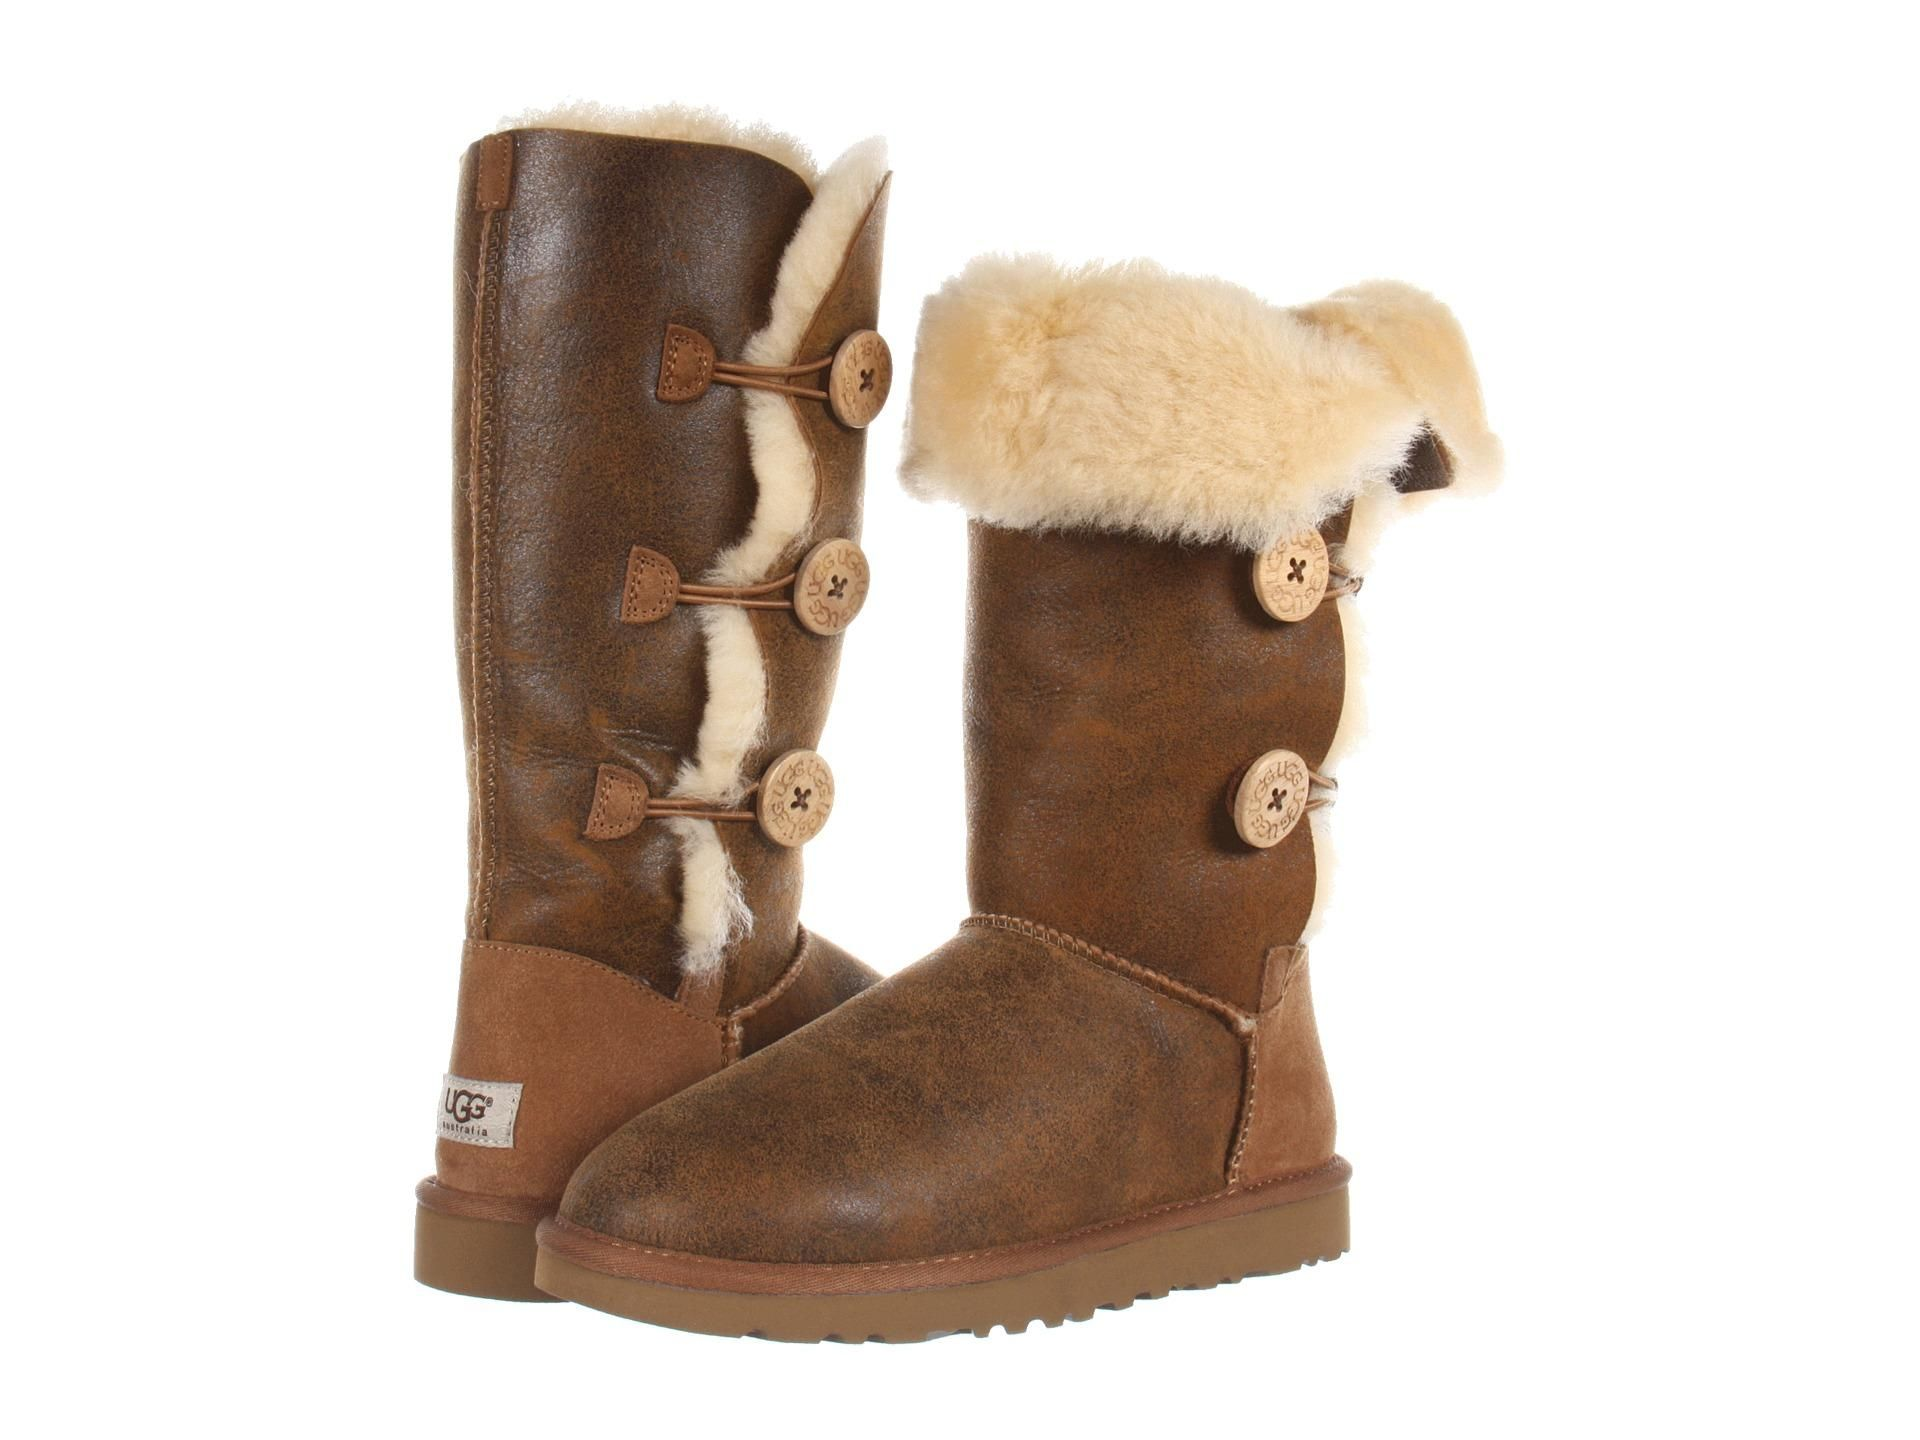 UGG Australia Chestnut Uggs BootsBooties Size US 8 Regular